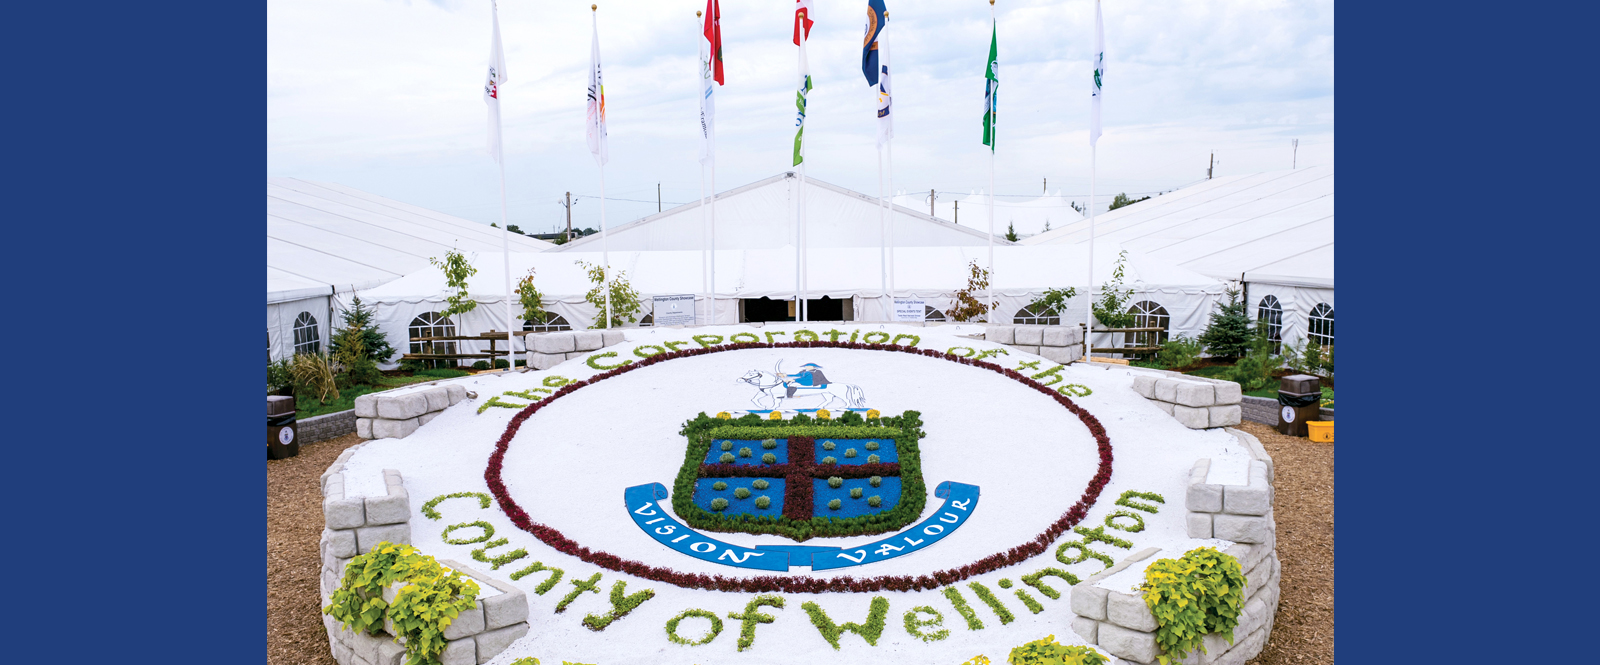 Wellington County logo with Town and Township flags